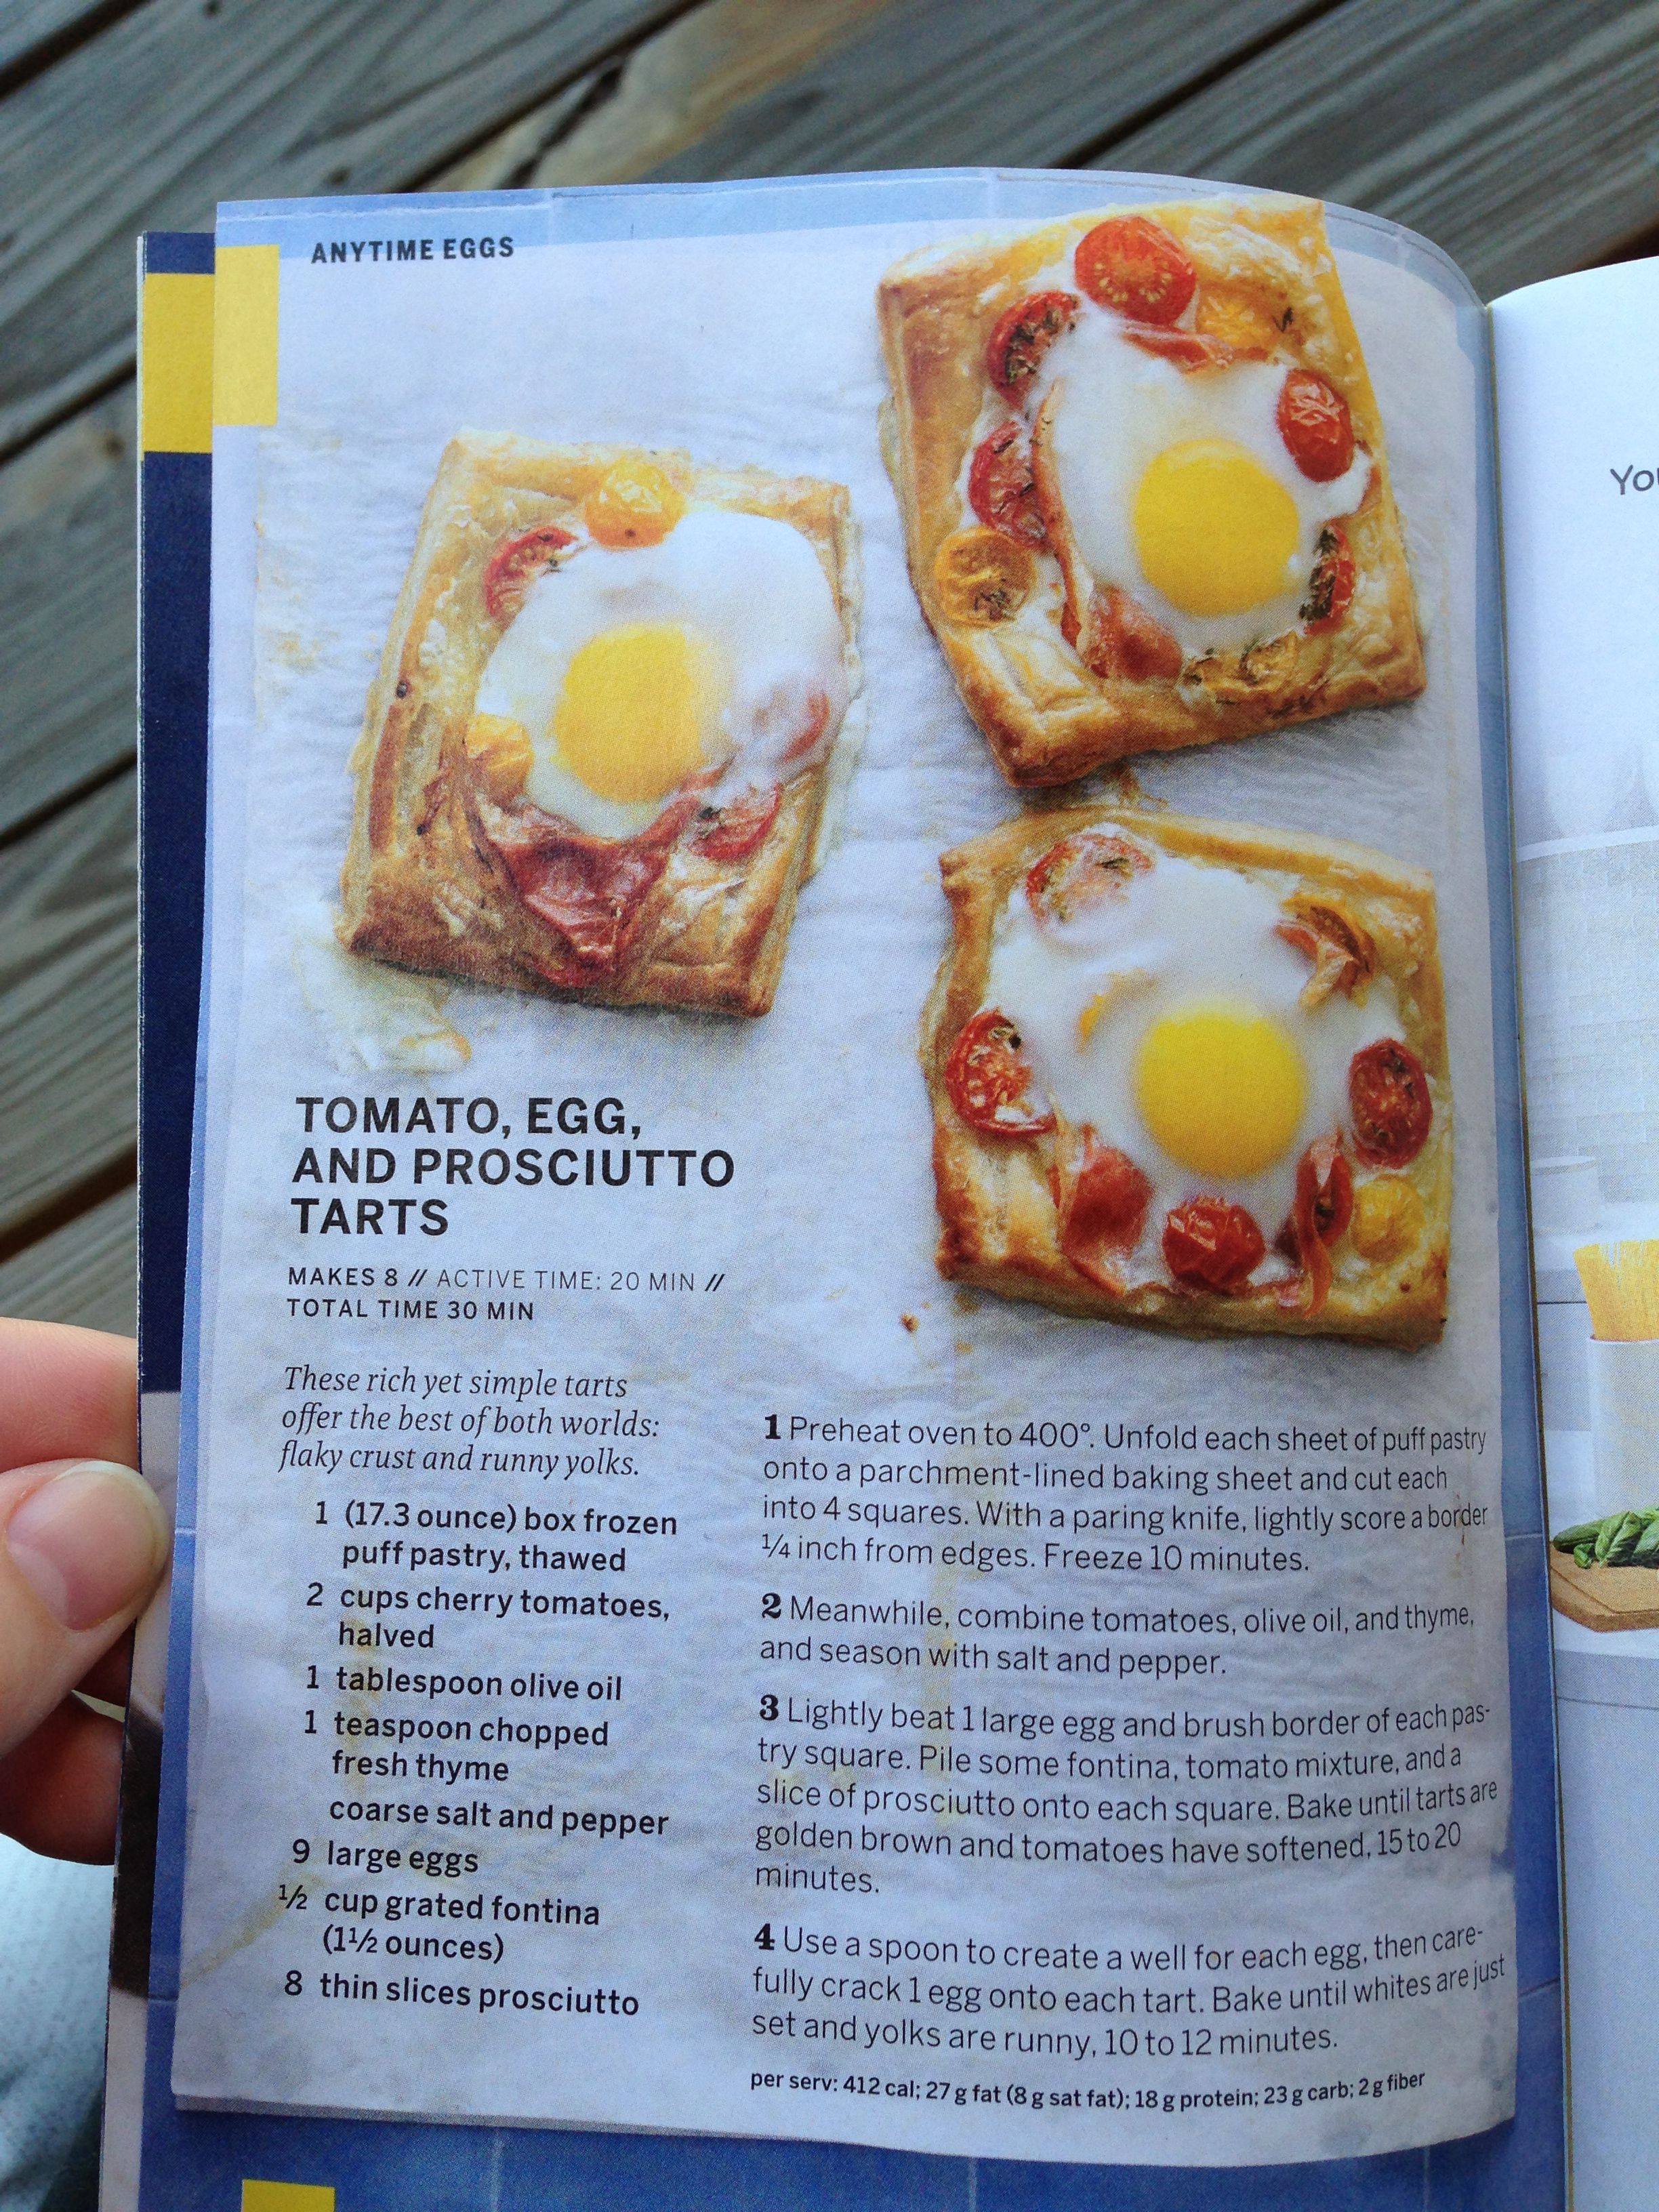 Martha Stewart recipe.. Find something to replace tomatoes with maybe